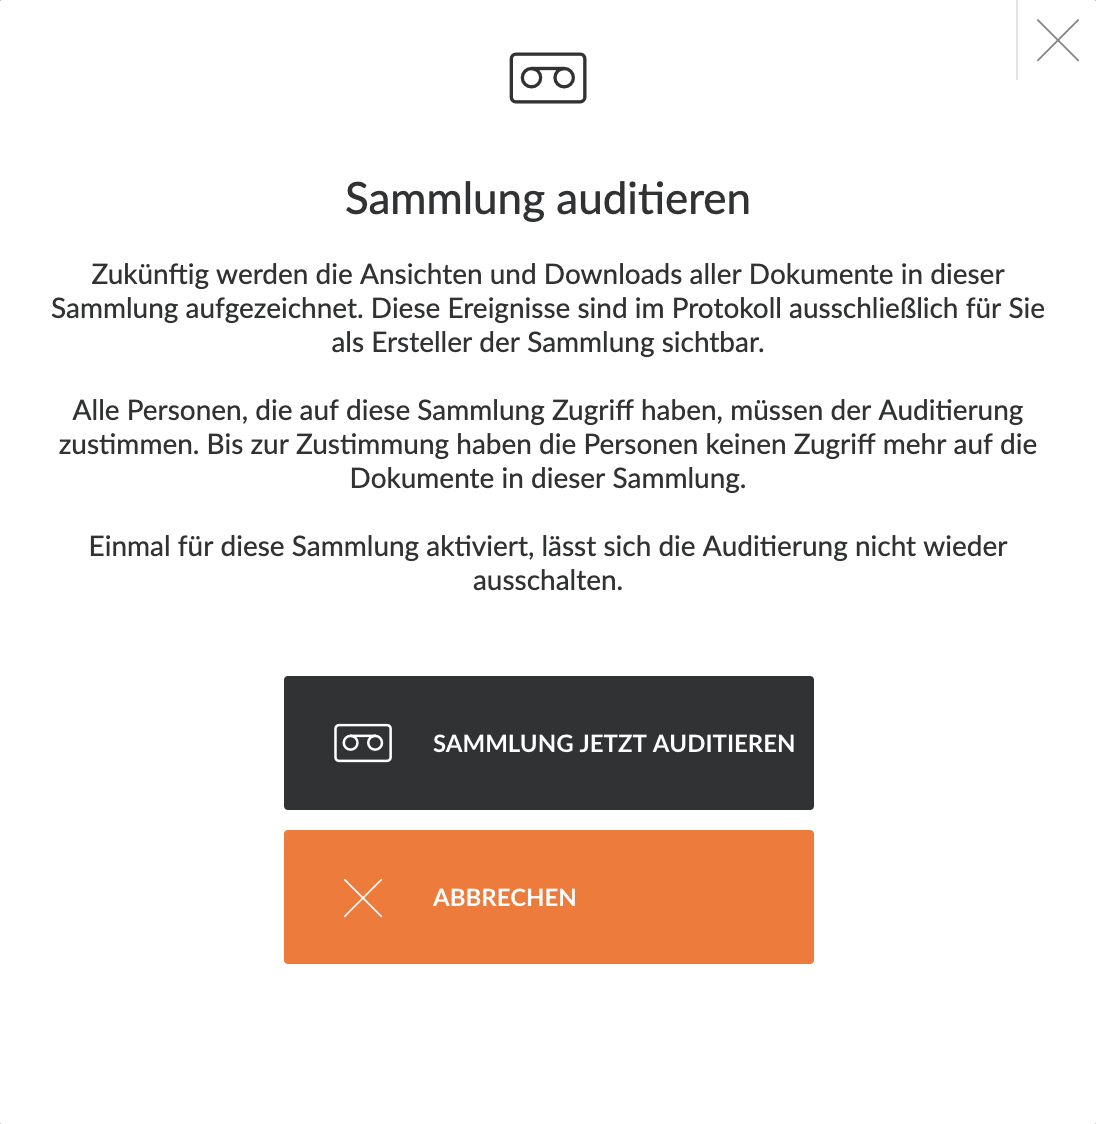 Sammlung auditieren